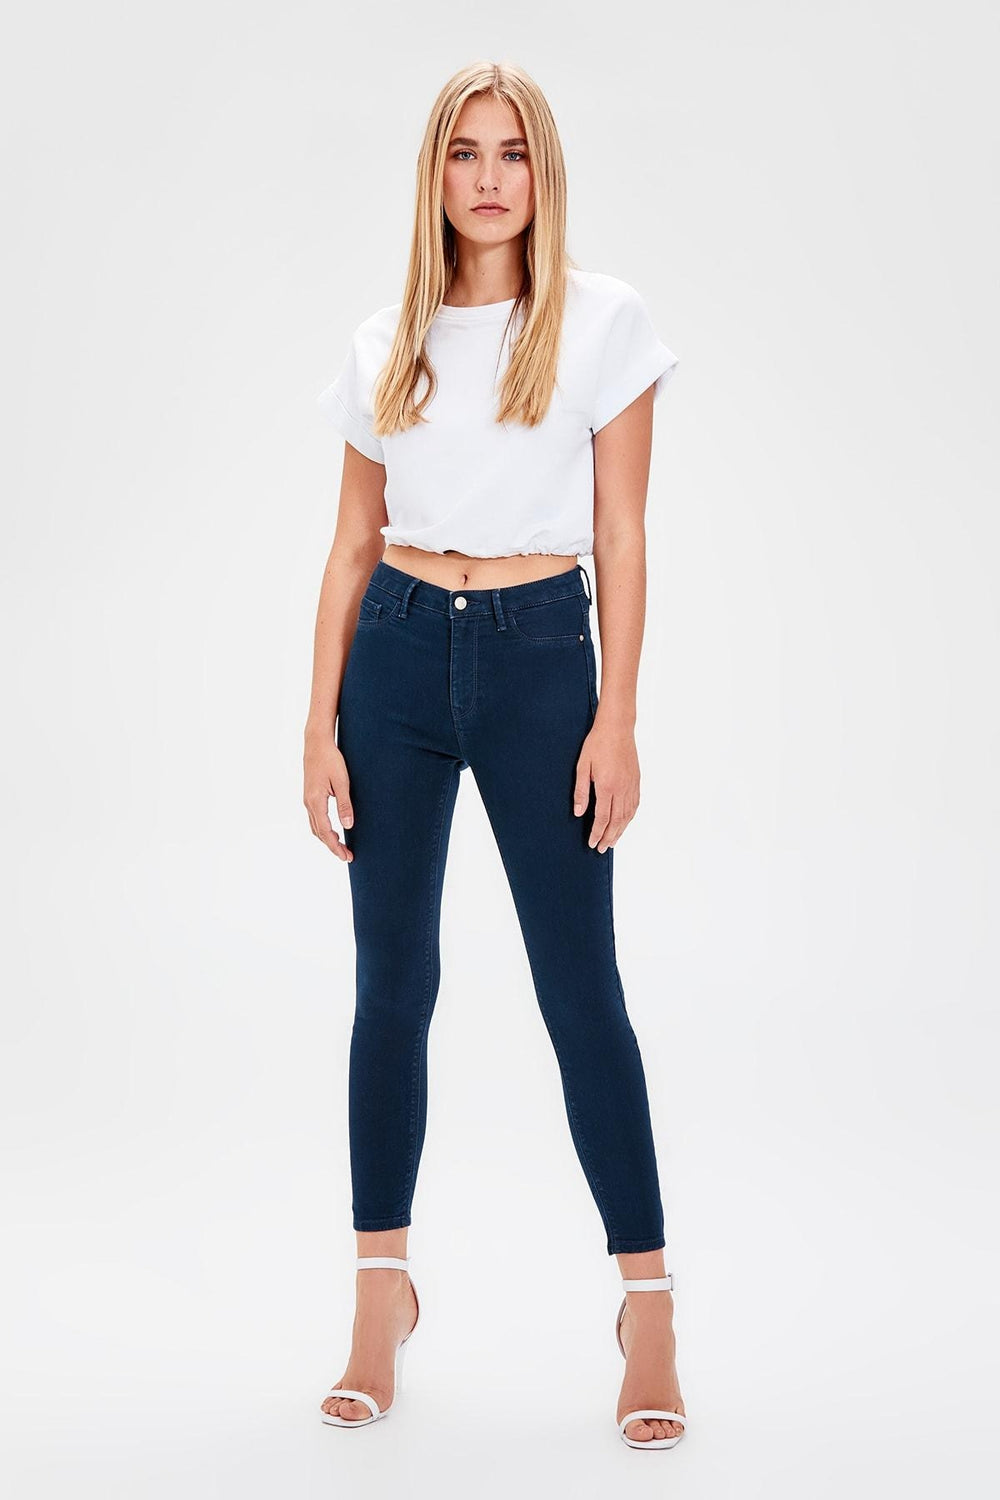 Miss Zut Miss Zut Indigo Normal Waist Jegging Jeans Miss Zut &CO